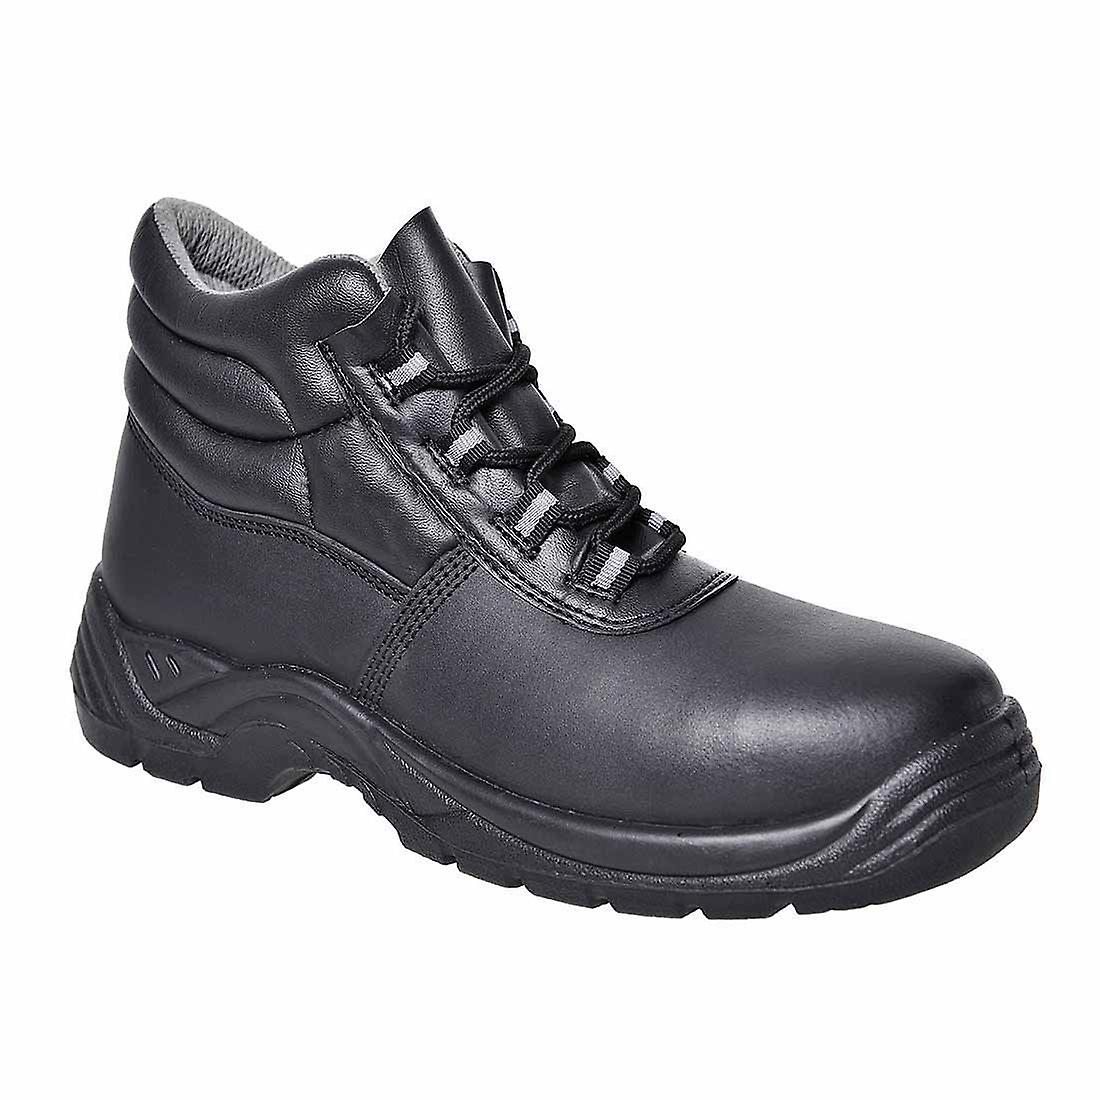 Work Ankle sUw Ankle Boot Compositelite Safety Workwear S1P wpxxgvf